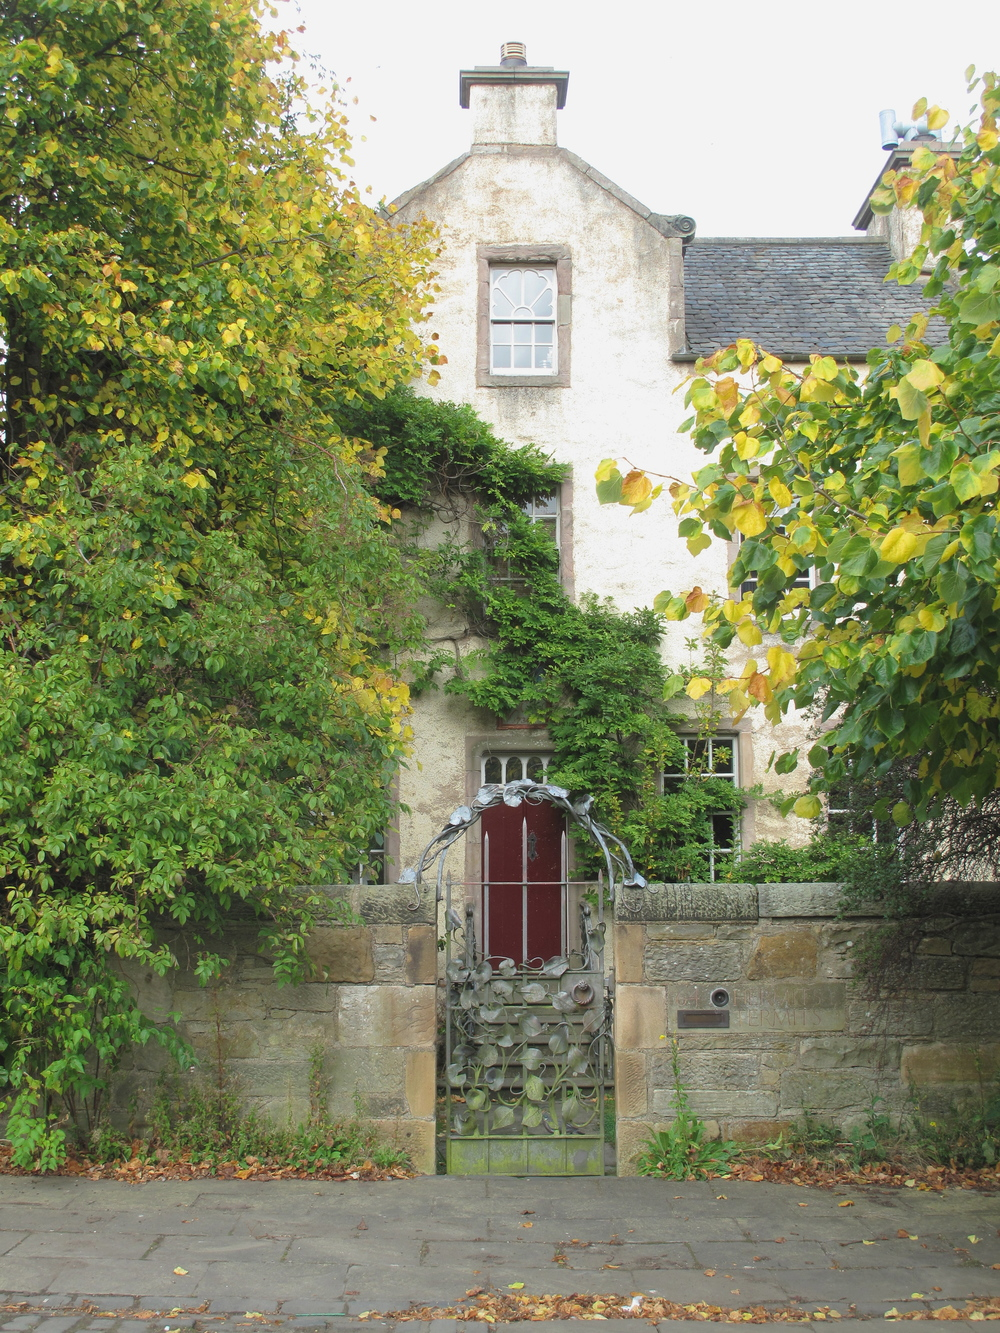 Small Scottish house with a red door in autumn.